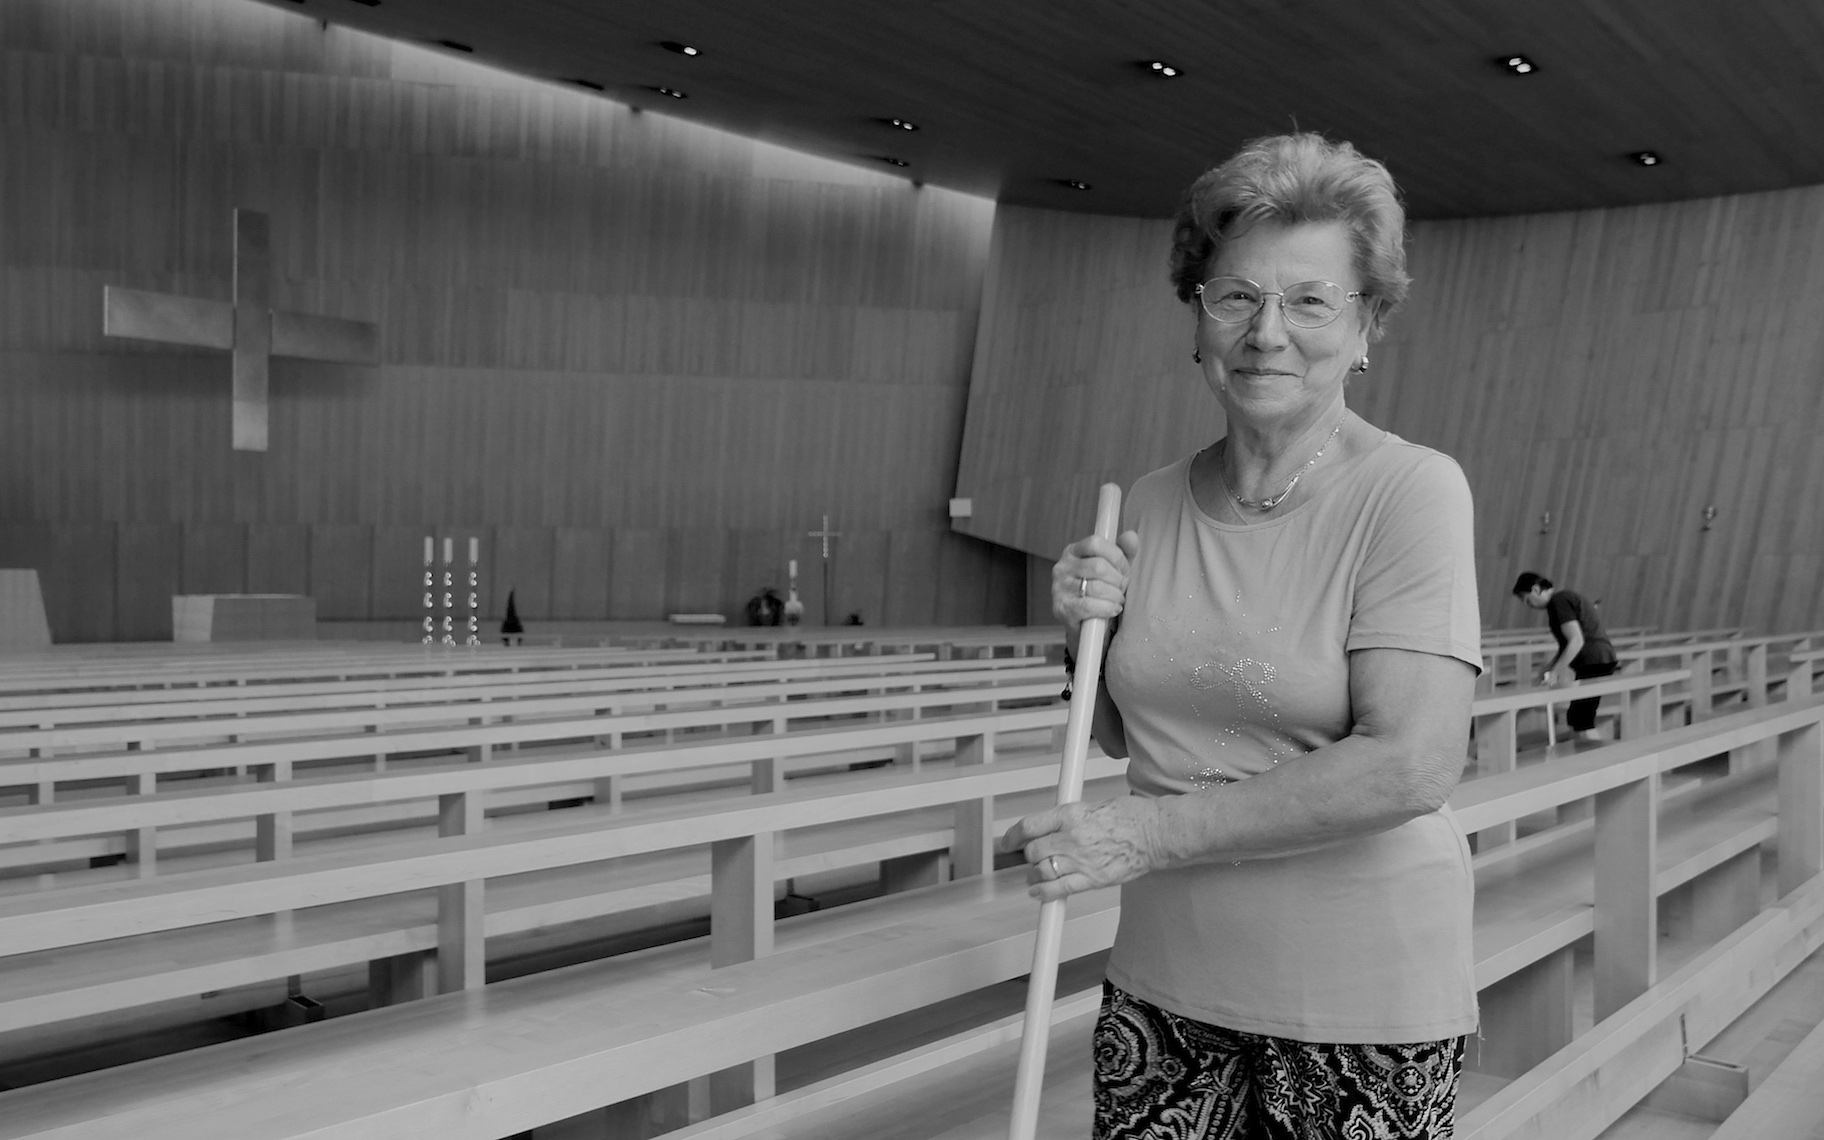 Volunteer Parishioner, Cleaning the Church of Laives, South Tyrol, Italy